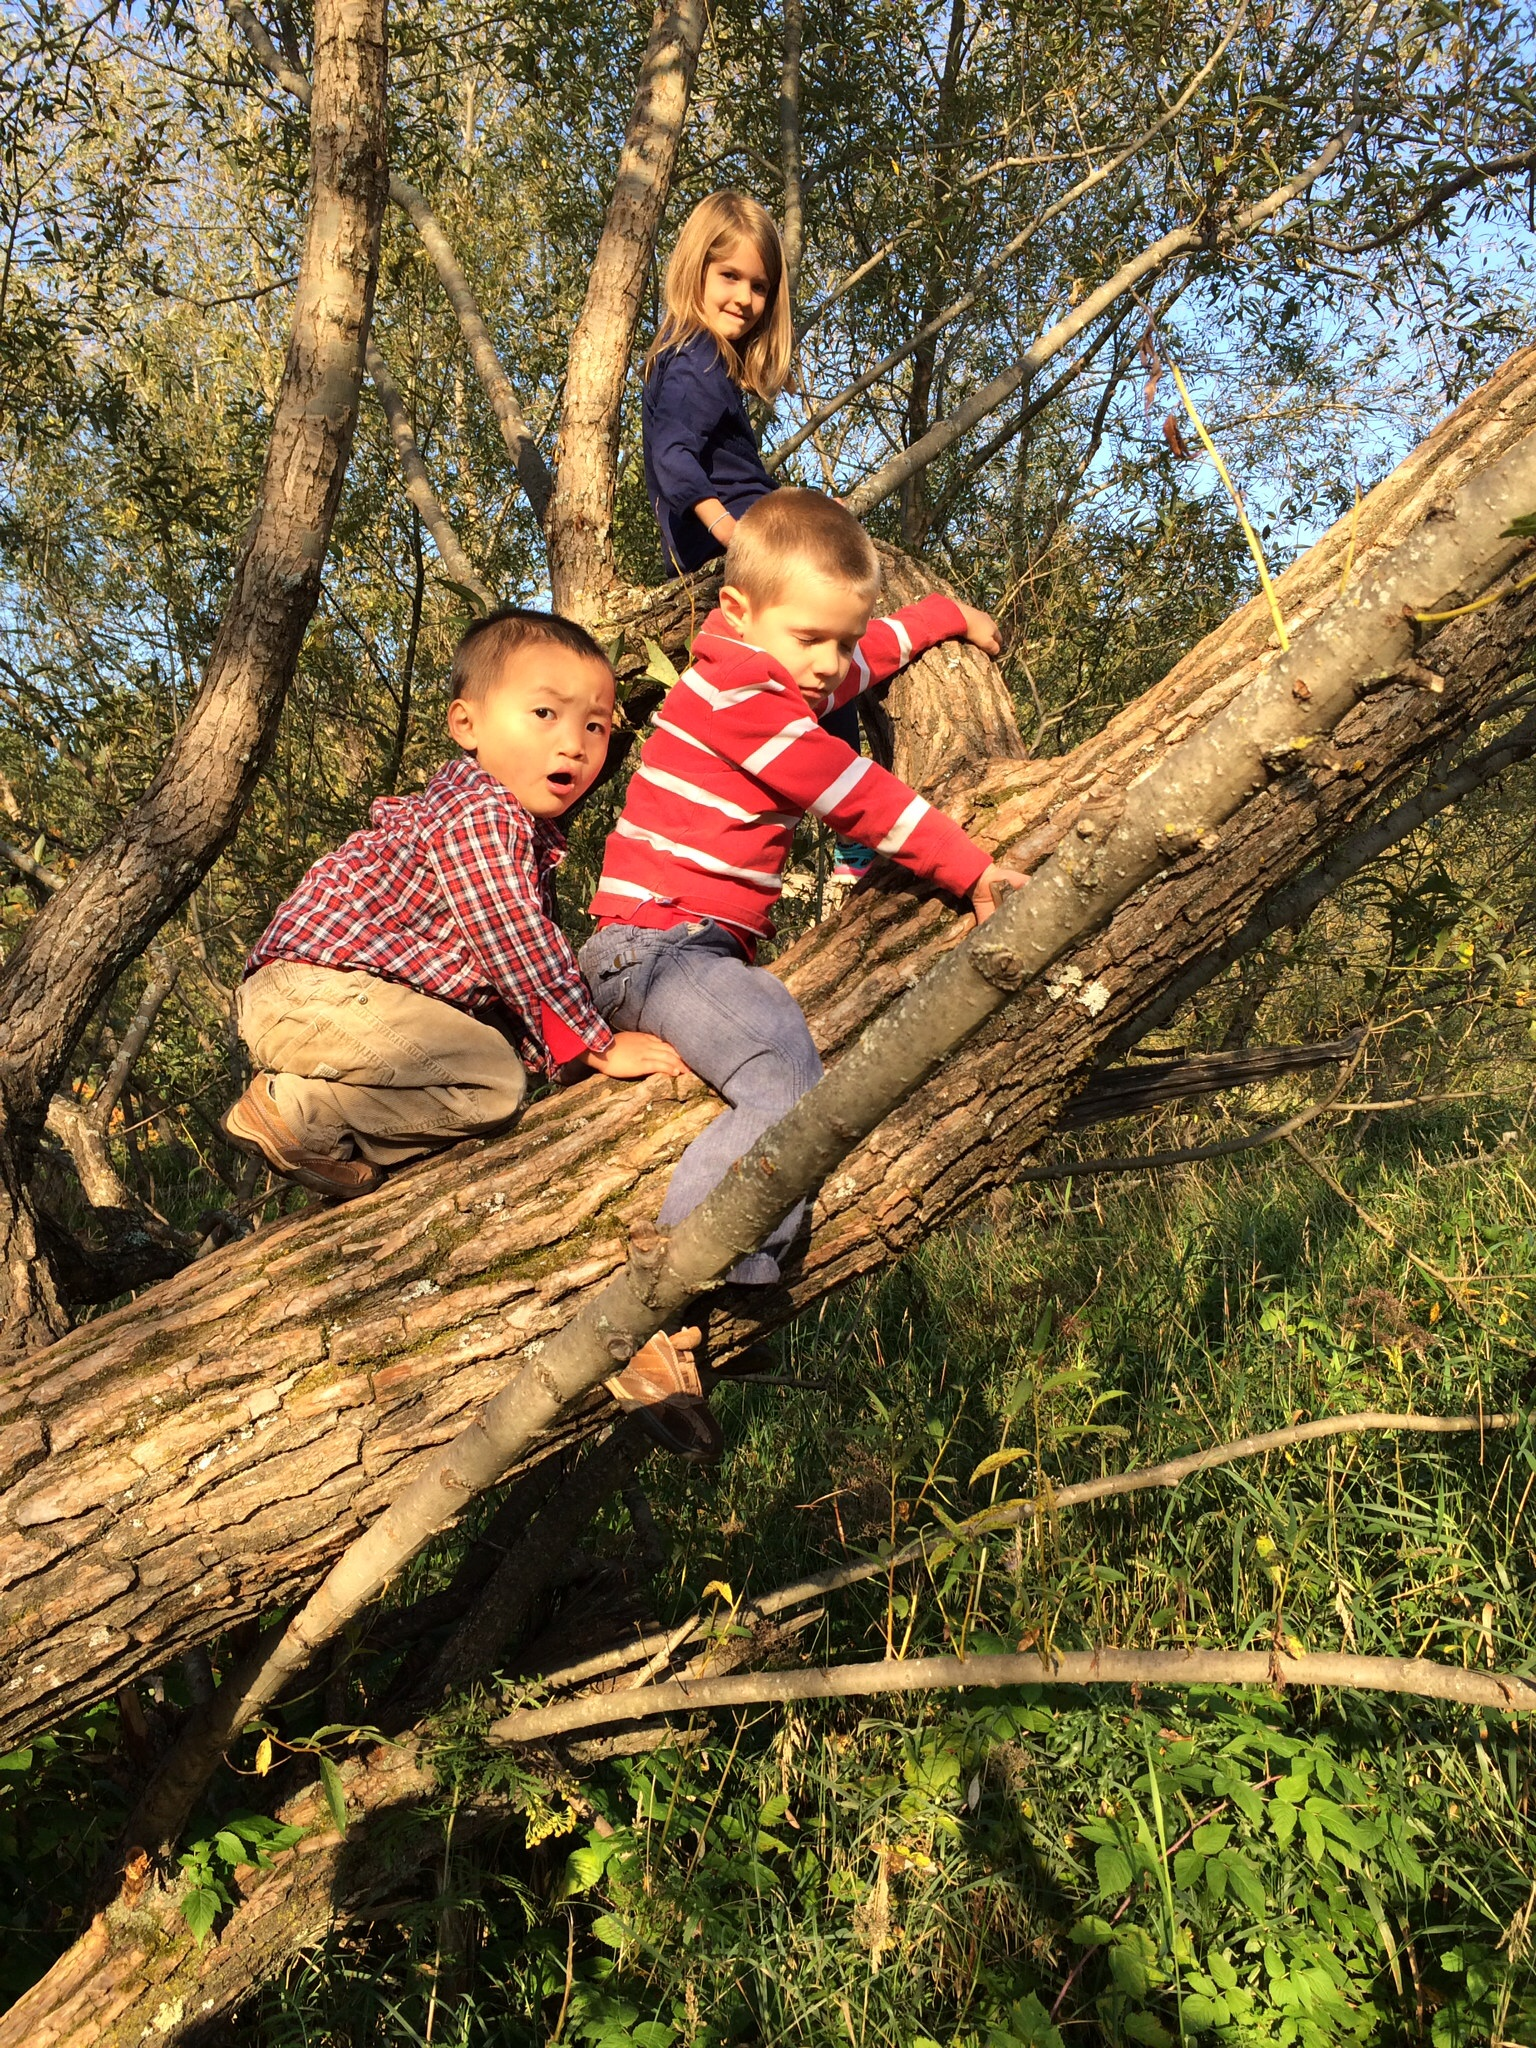 boys on a tree: what more fun playground is there?!